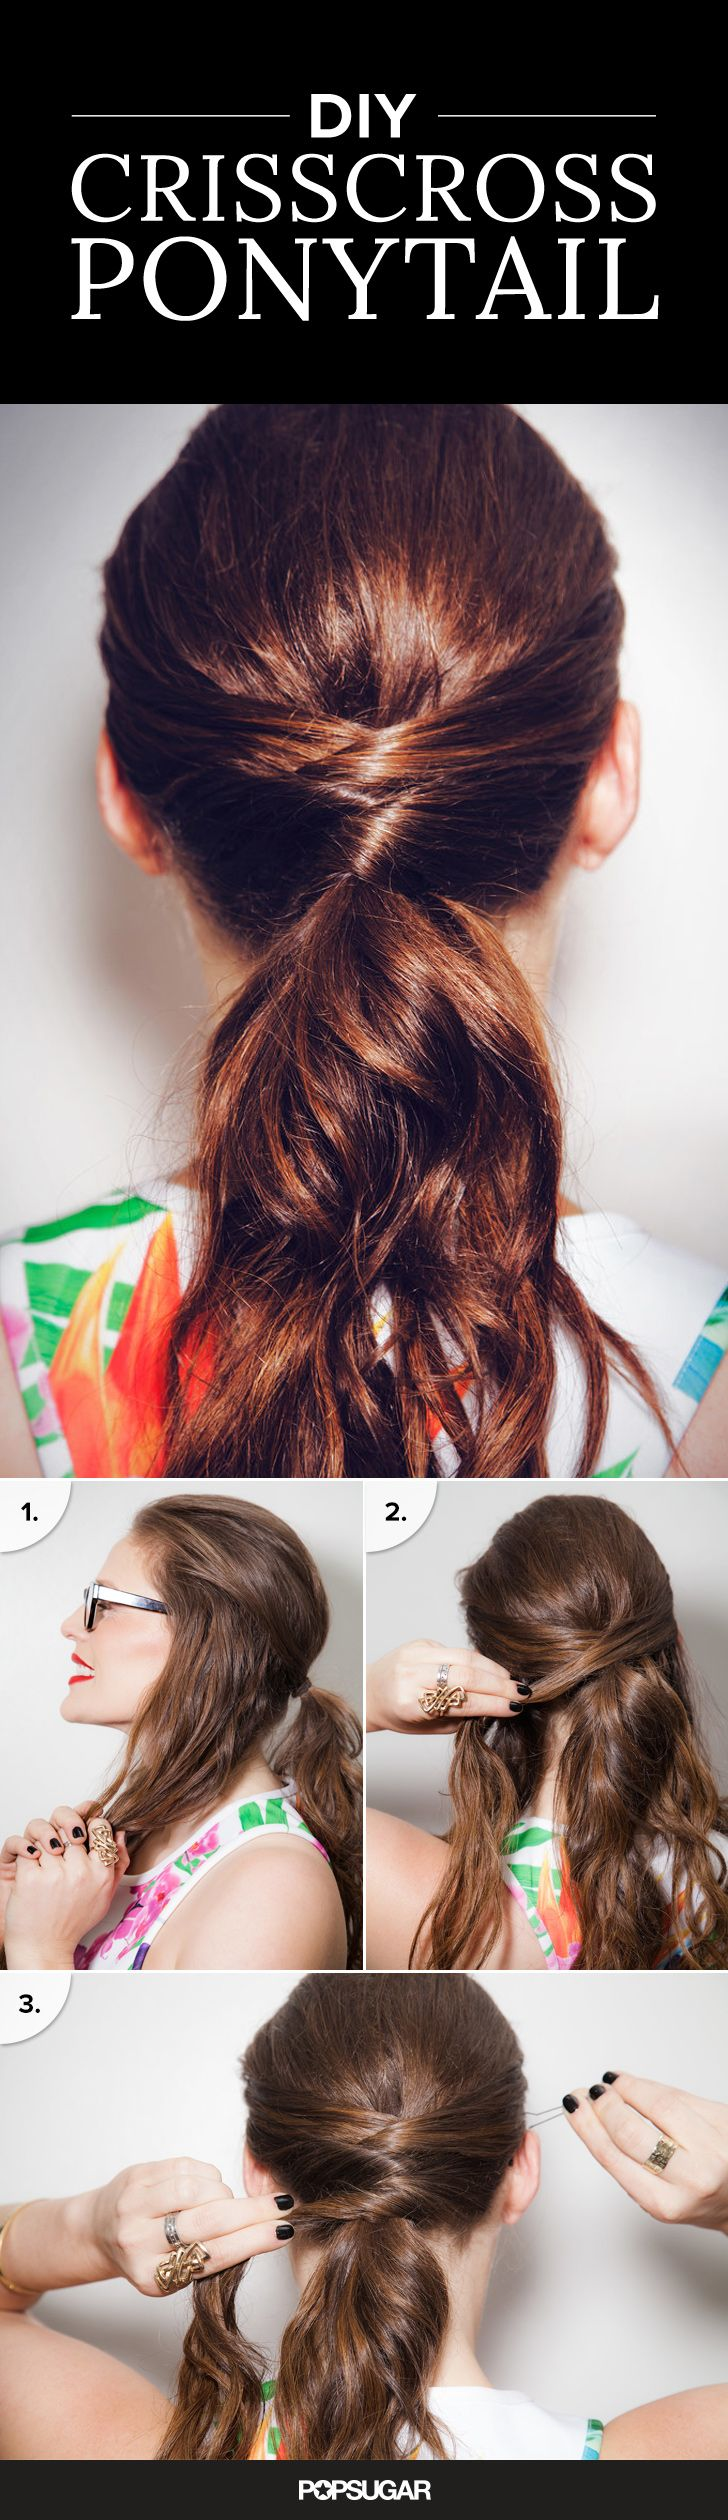 DIY that awesome crisscross ponytail you keep seeing on Pinterest!